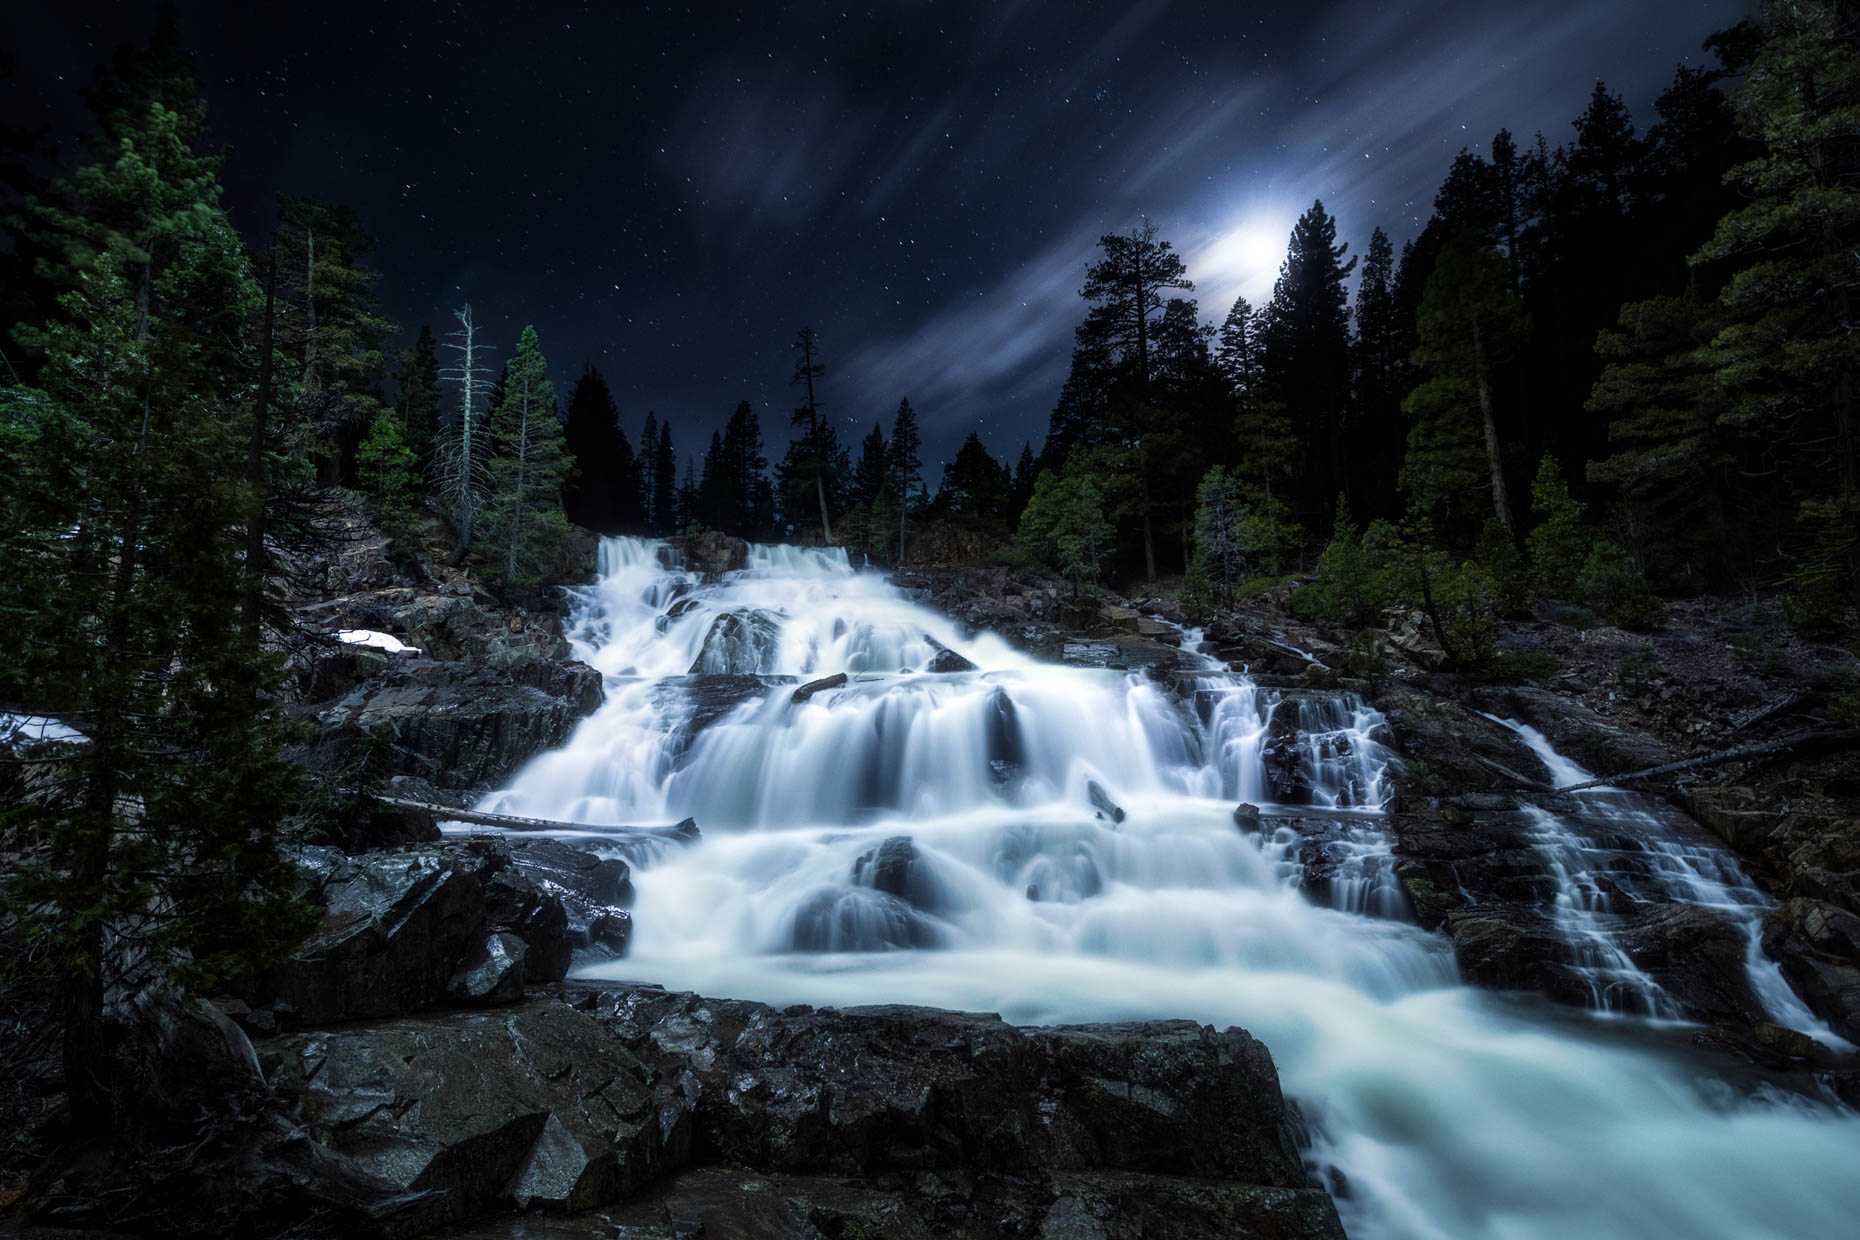 Night Sky - Glen Alpine Falls, South Lake Tahoe, California